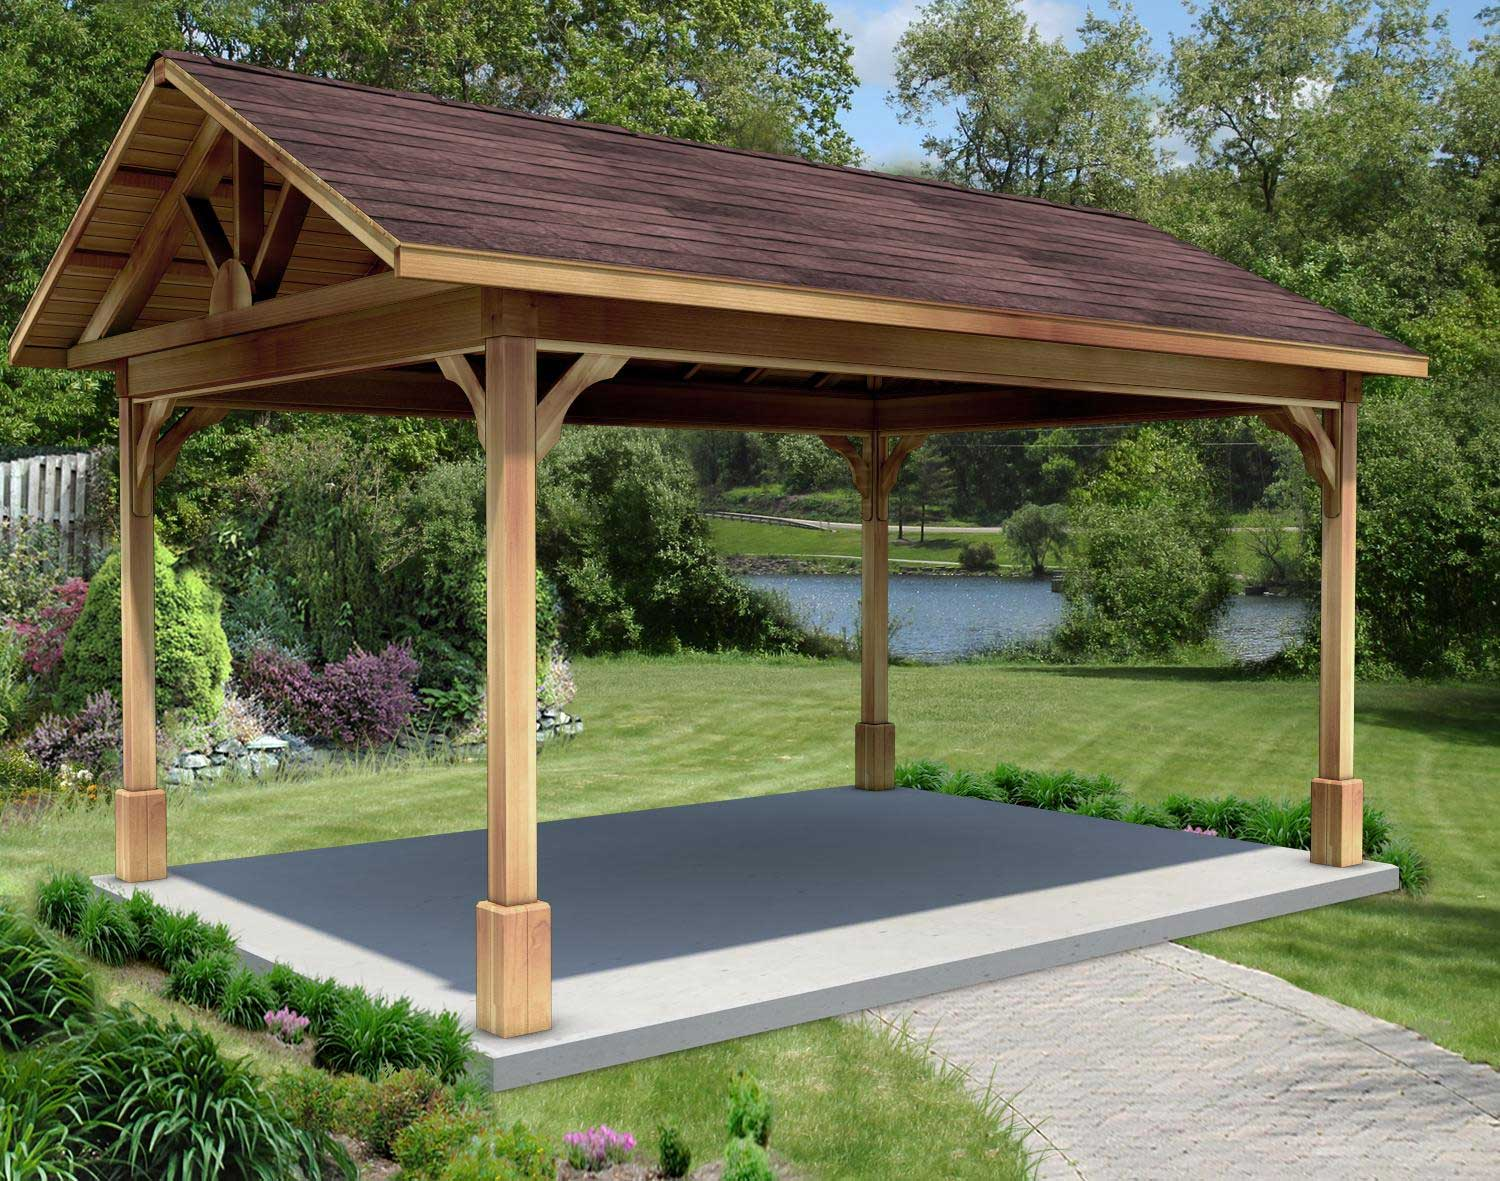 How to build a rectangular gazebo step by step guide and - How to make a gazebo cover ...